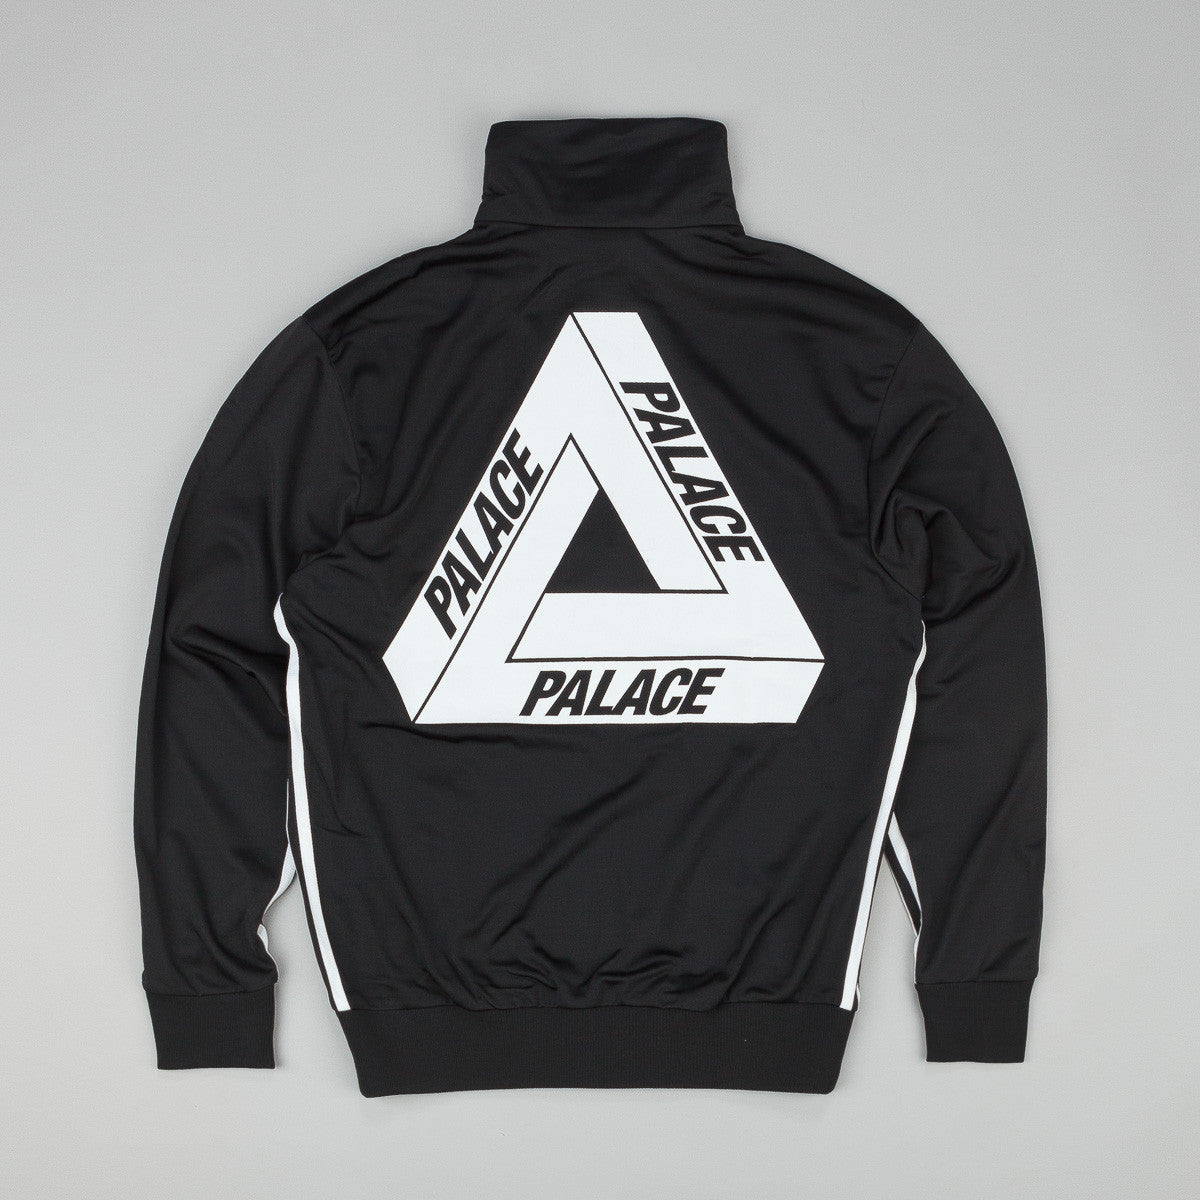 Adidas x Palace Firebird Track Top Jacket - Black